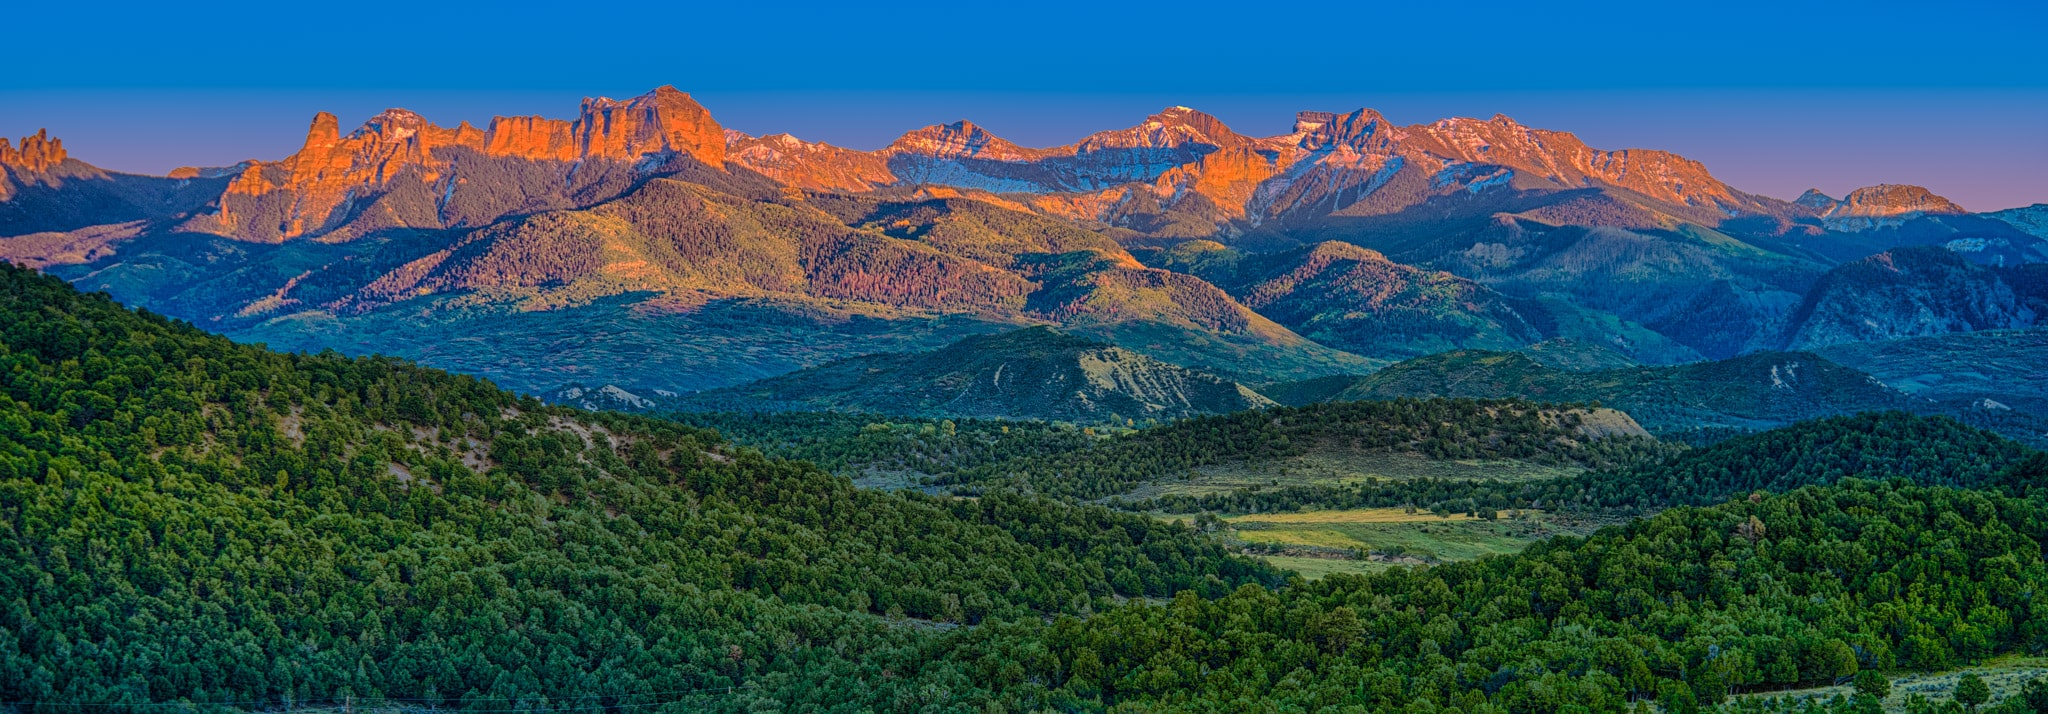 The last light o the days washes the Cimarron Mountains in orange and pink light as seen from Ridgway State Park outside Ridgway, Colorado.